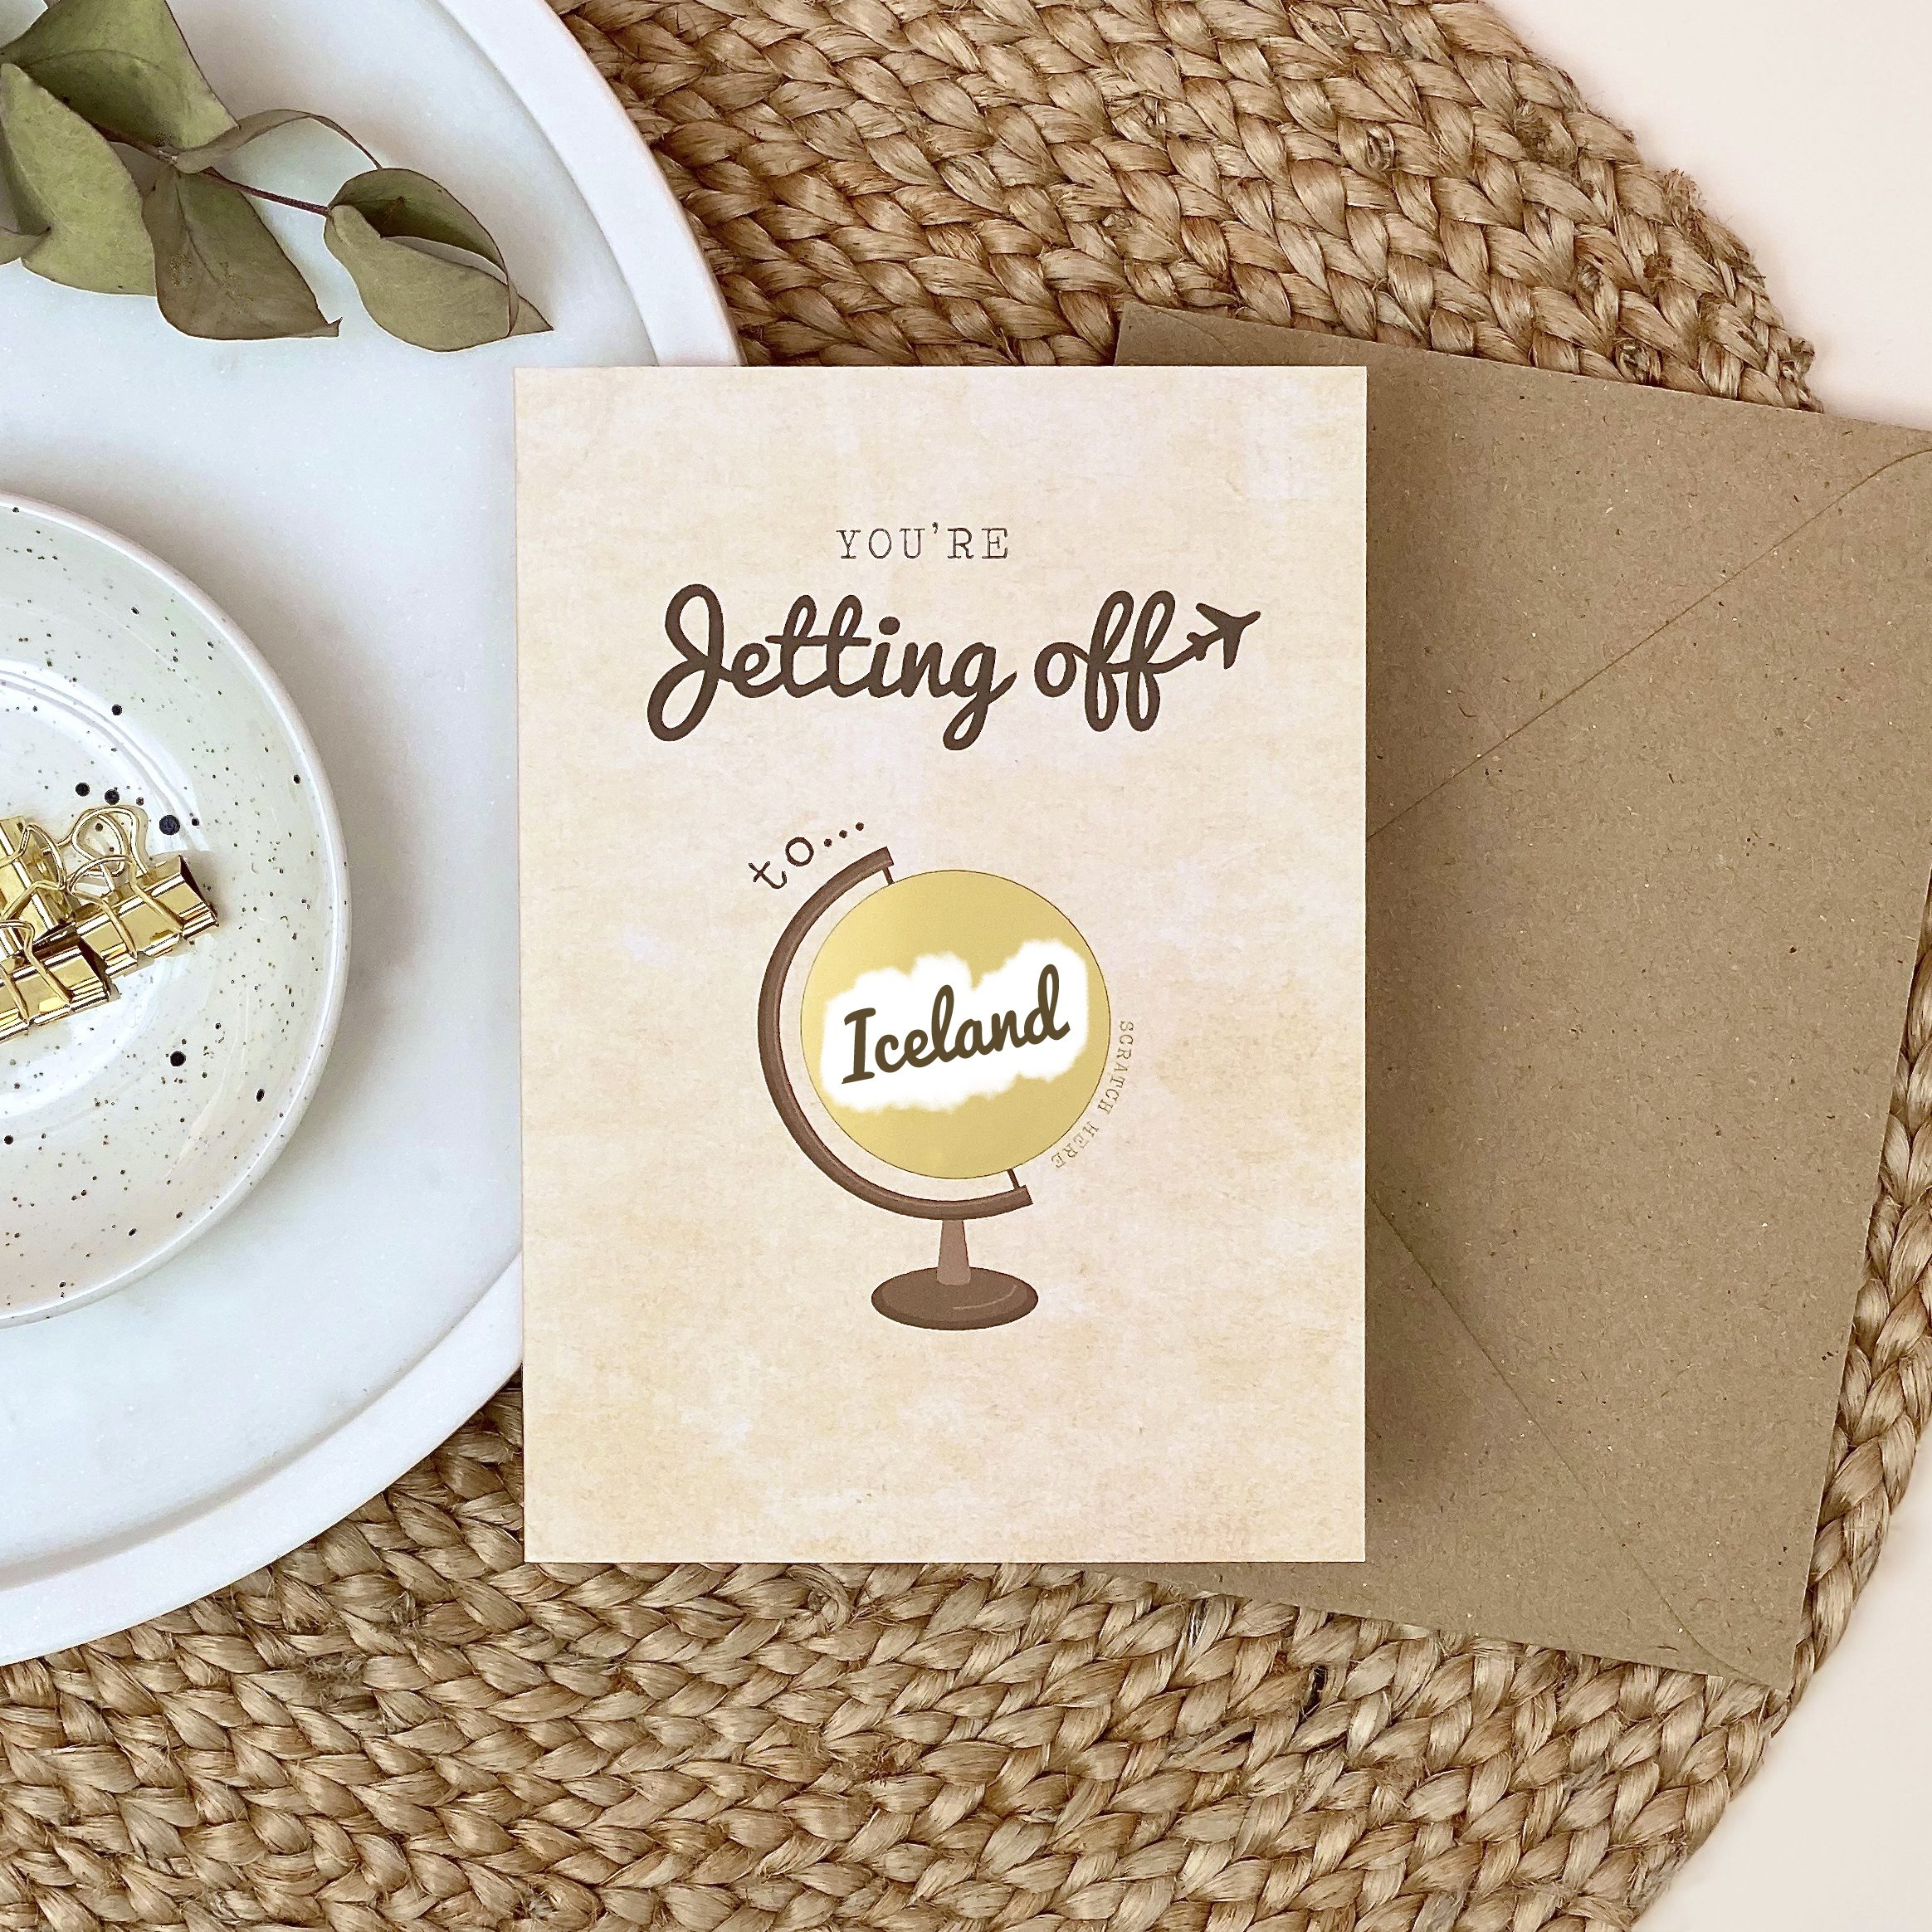 Travel Card Jetting Off Surprise Scratch Off - Designed by Rodo Creative